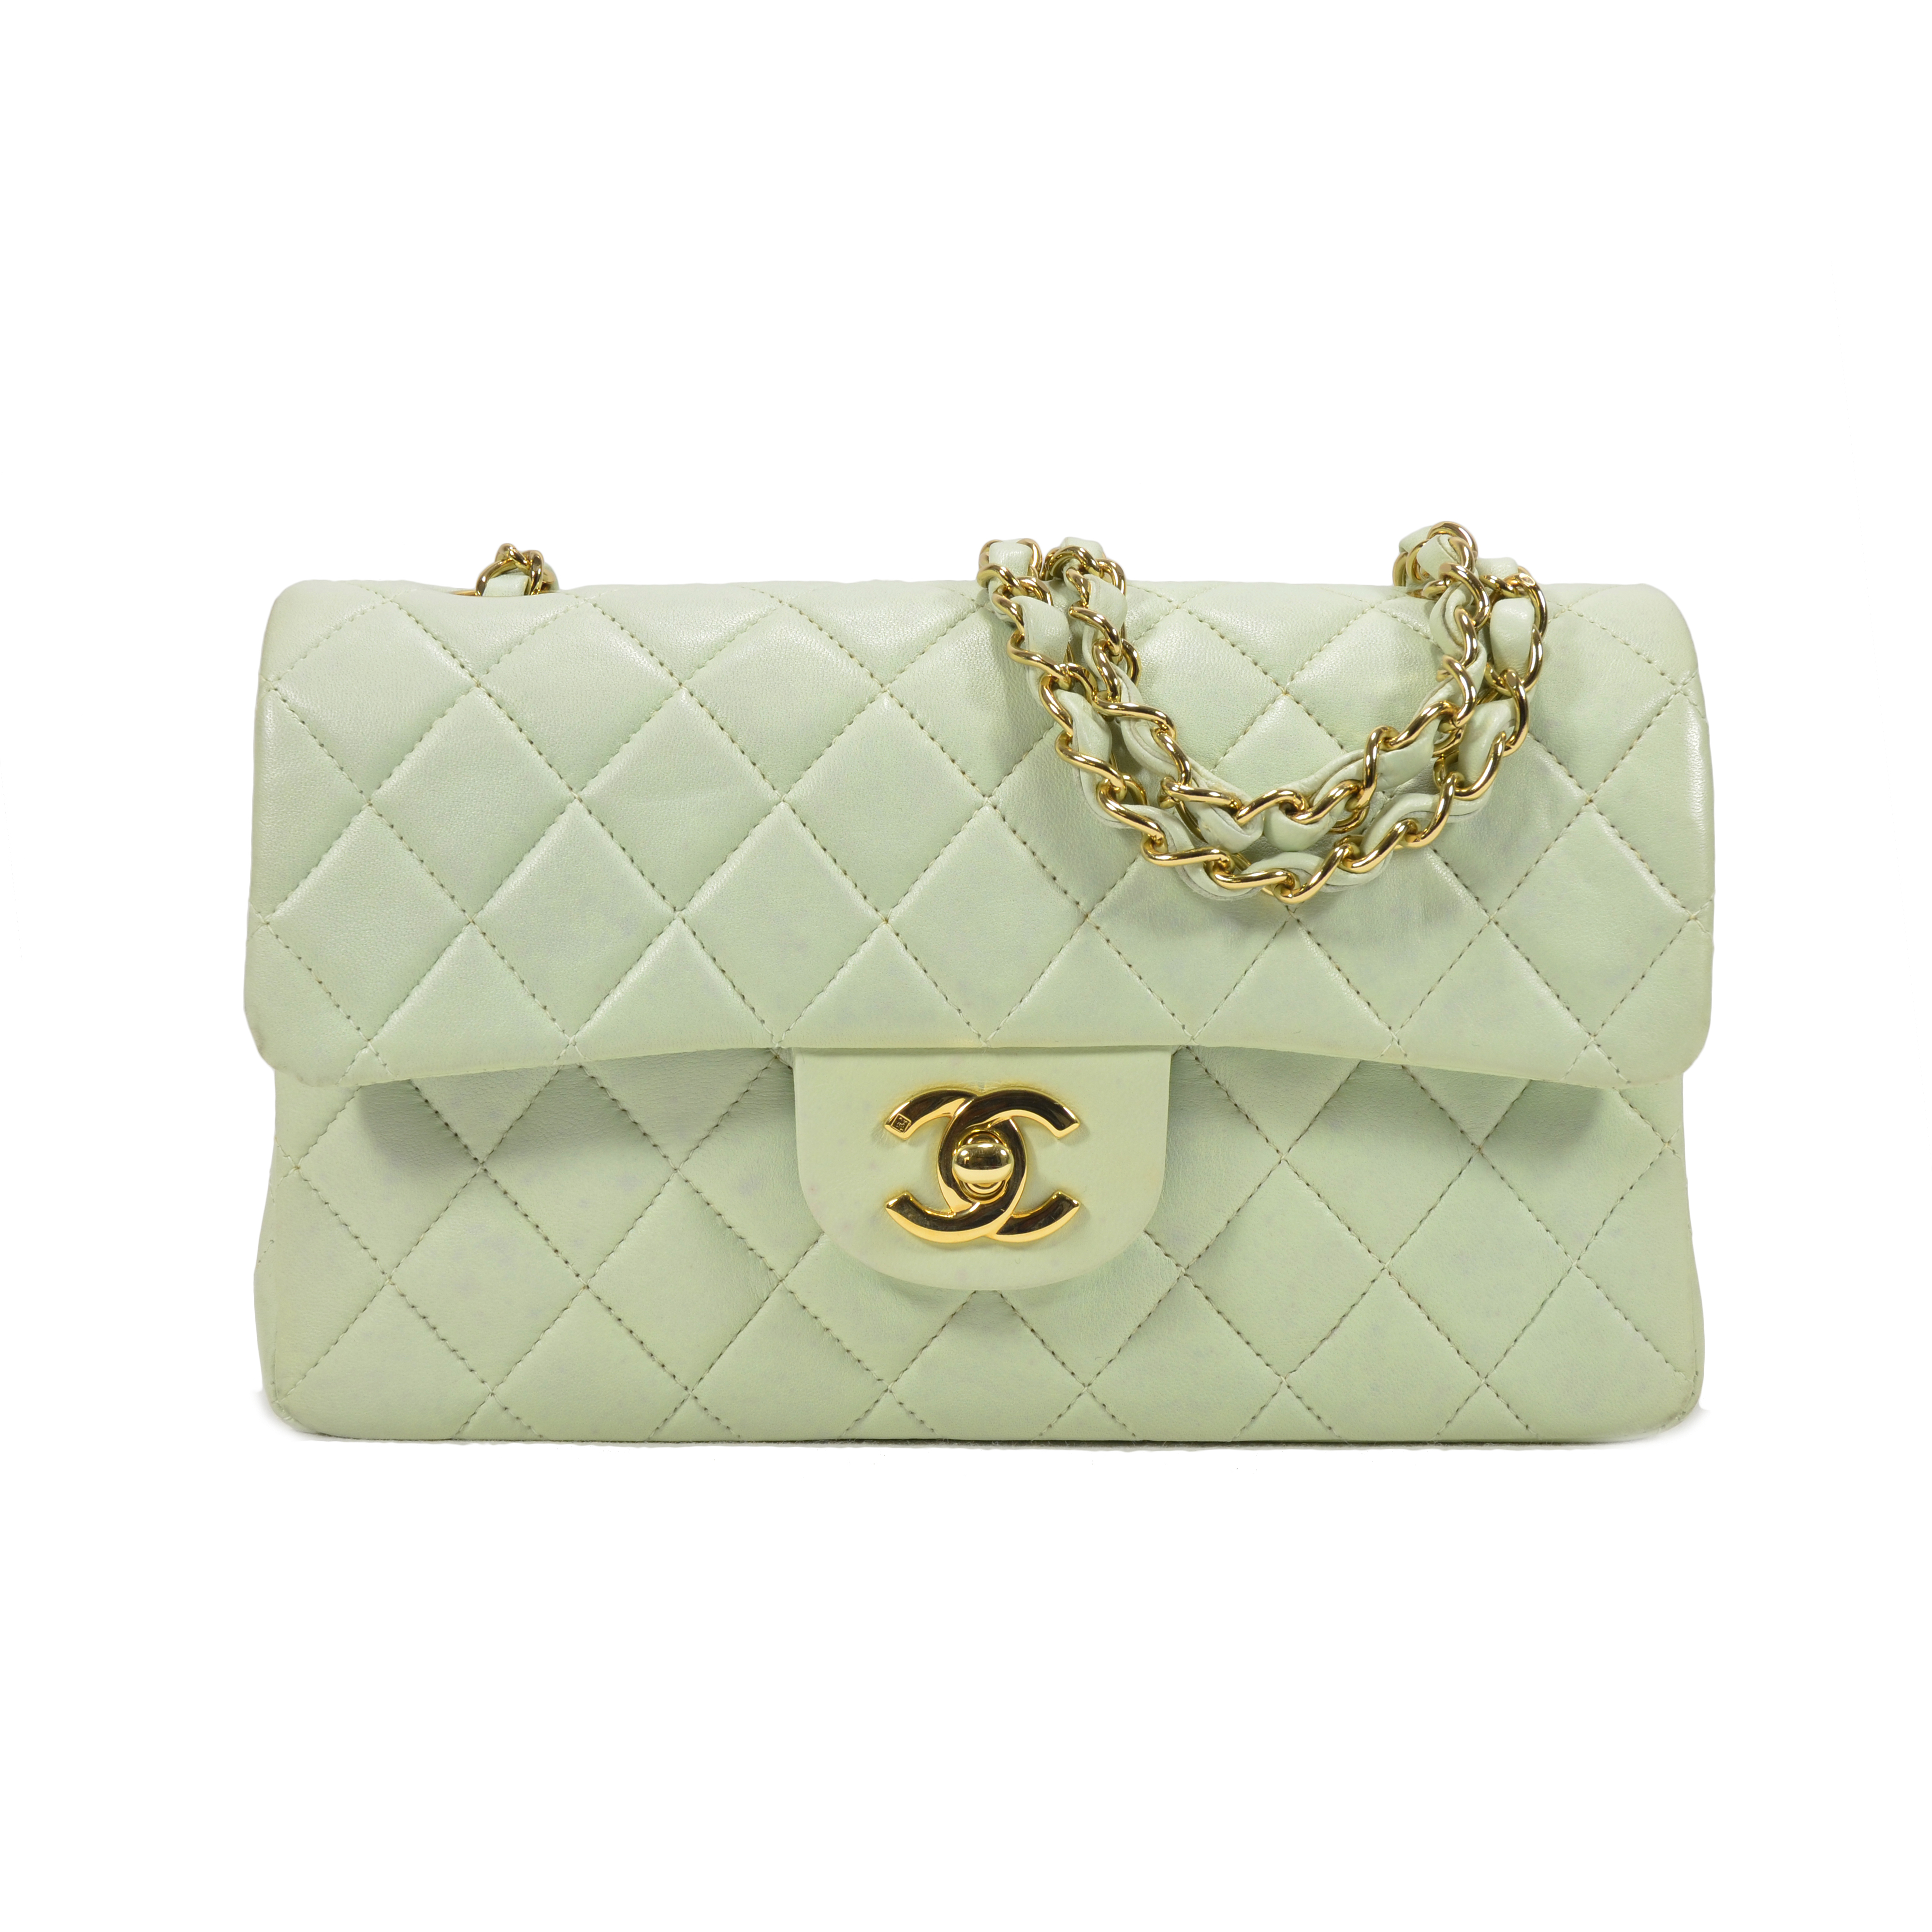 5ce4a2079c20 Authentic Second Hand Chanel Pastel Green Classic Double Flap Bag  (PSS-051-00146)